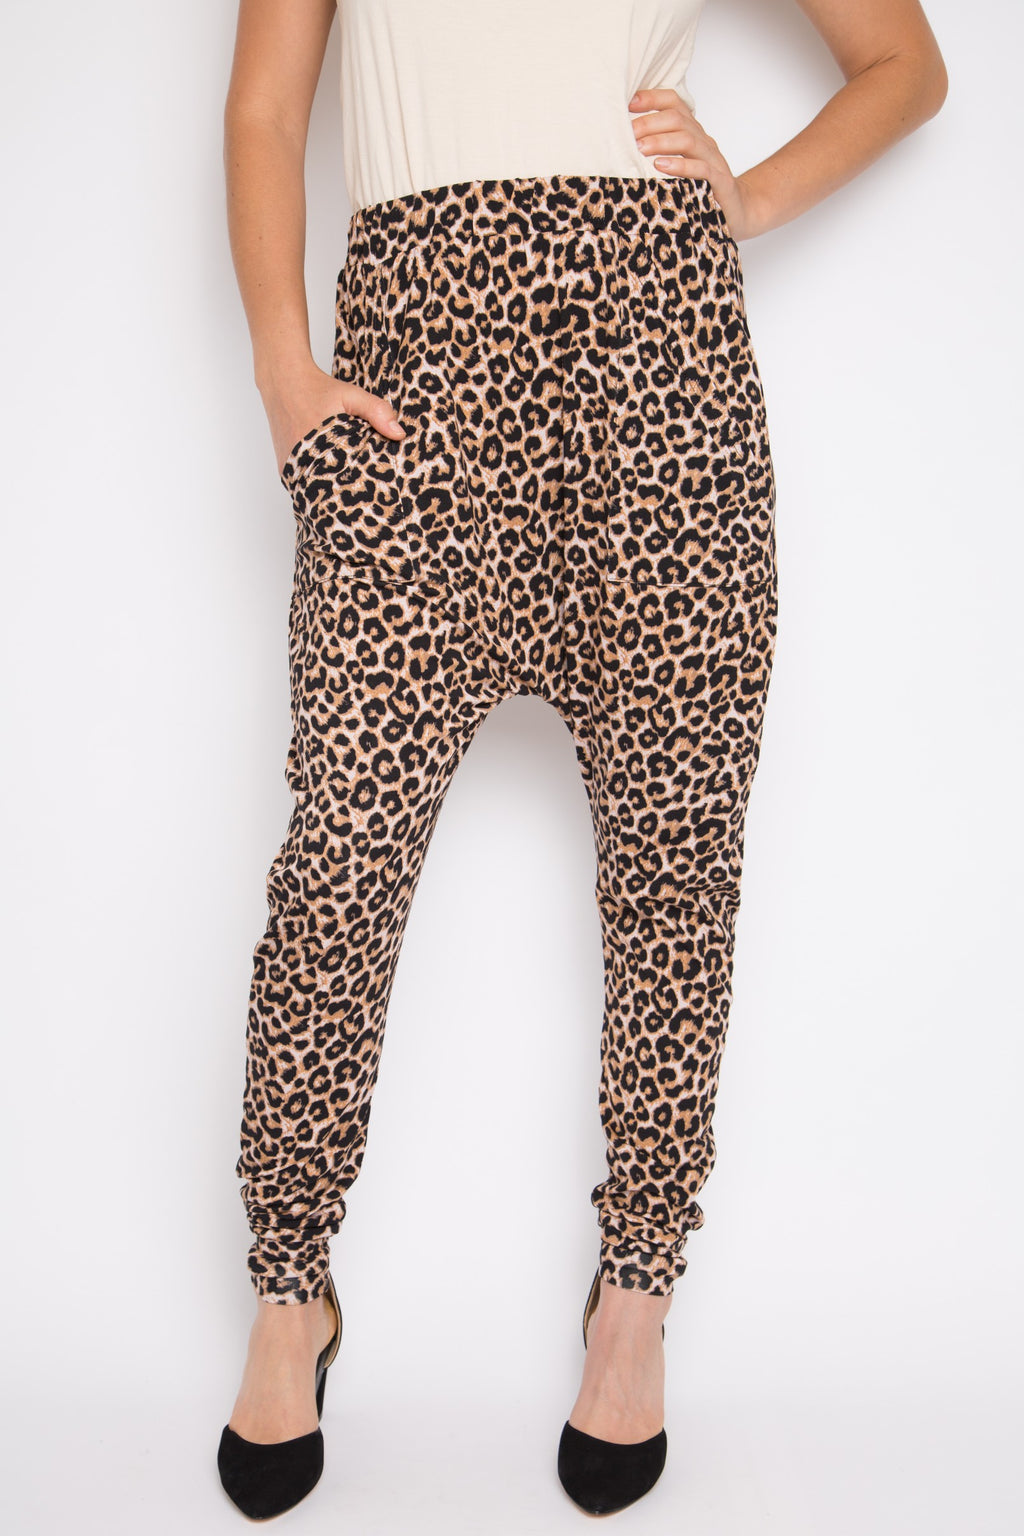 Cuffed Droppy Pant in Ginger Leopard